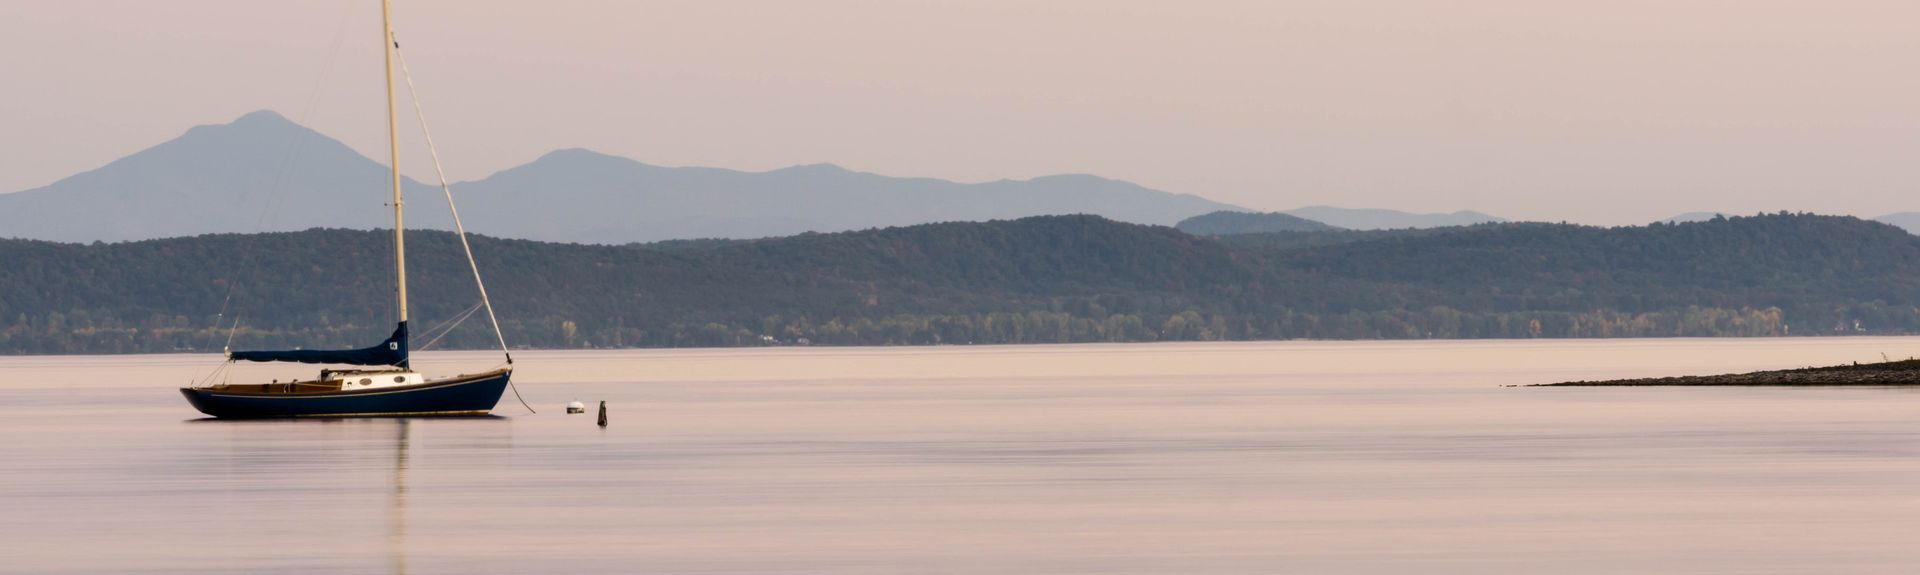 Lake Champlain Islands, Vermont, USA